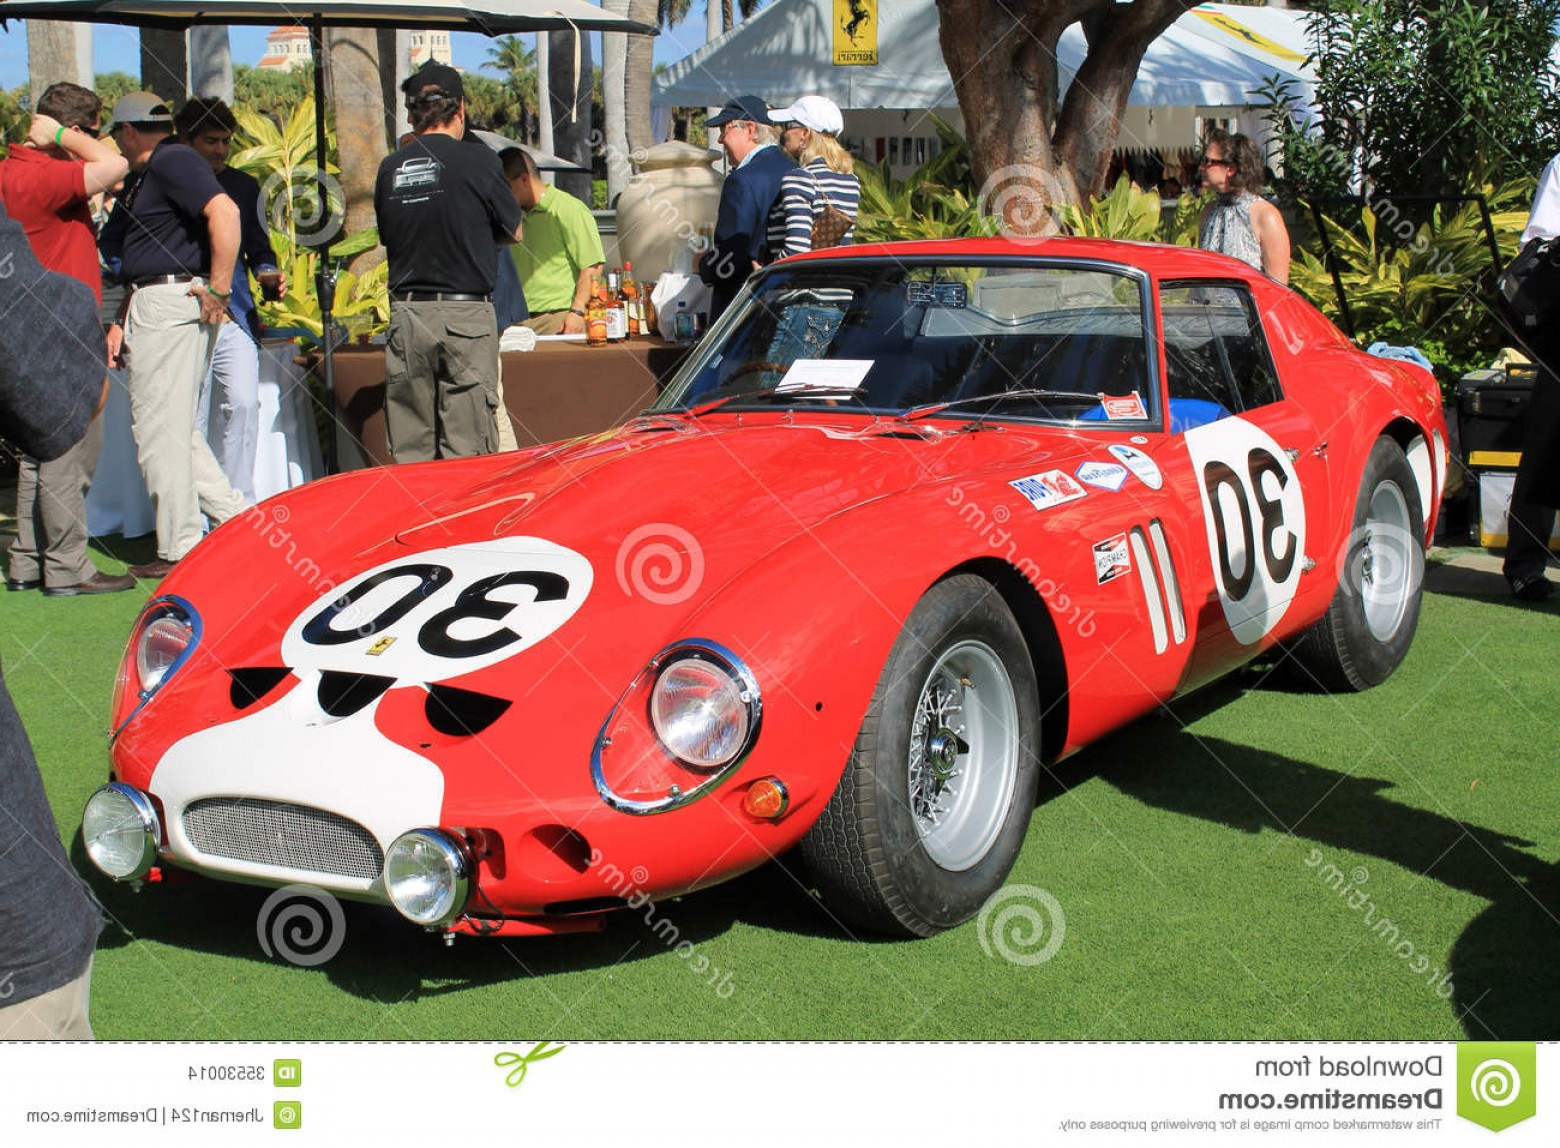 Race Car Grill Vector: Stock Images Ferrari Gto Racecar Front View Frontal Iconic Classic S Showing Grill Headlamps Racing Decals Air Intakes Surrounded Image